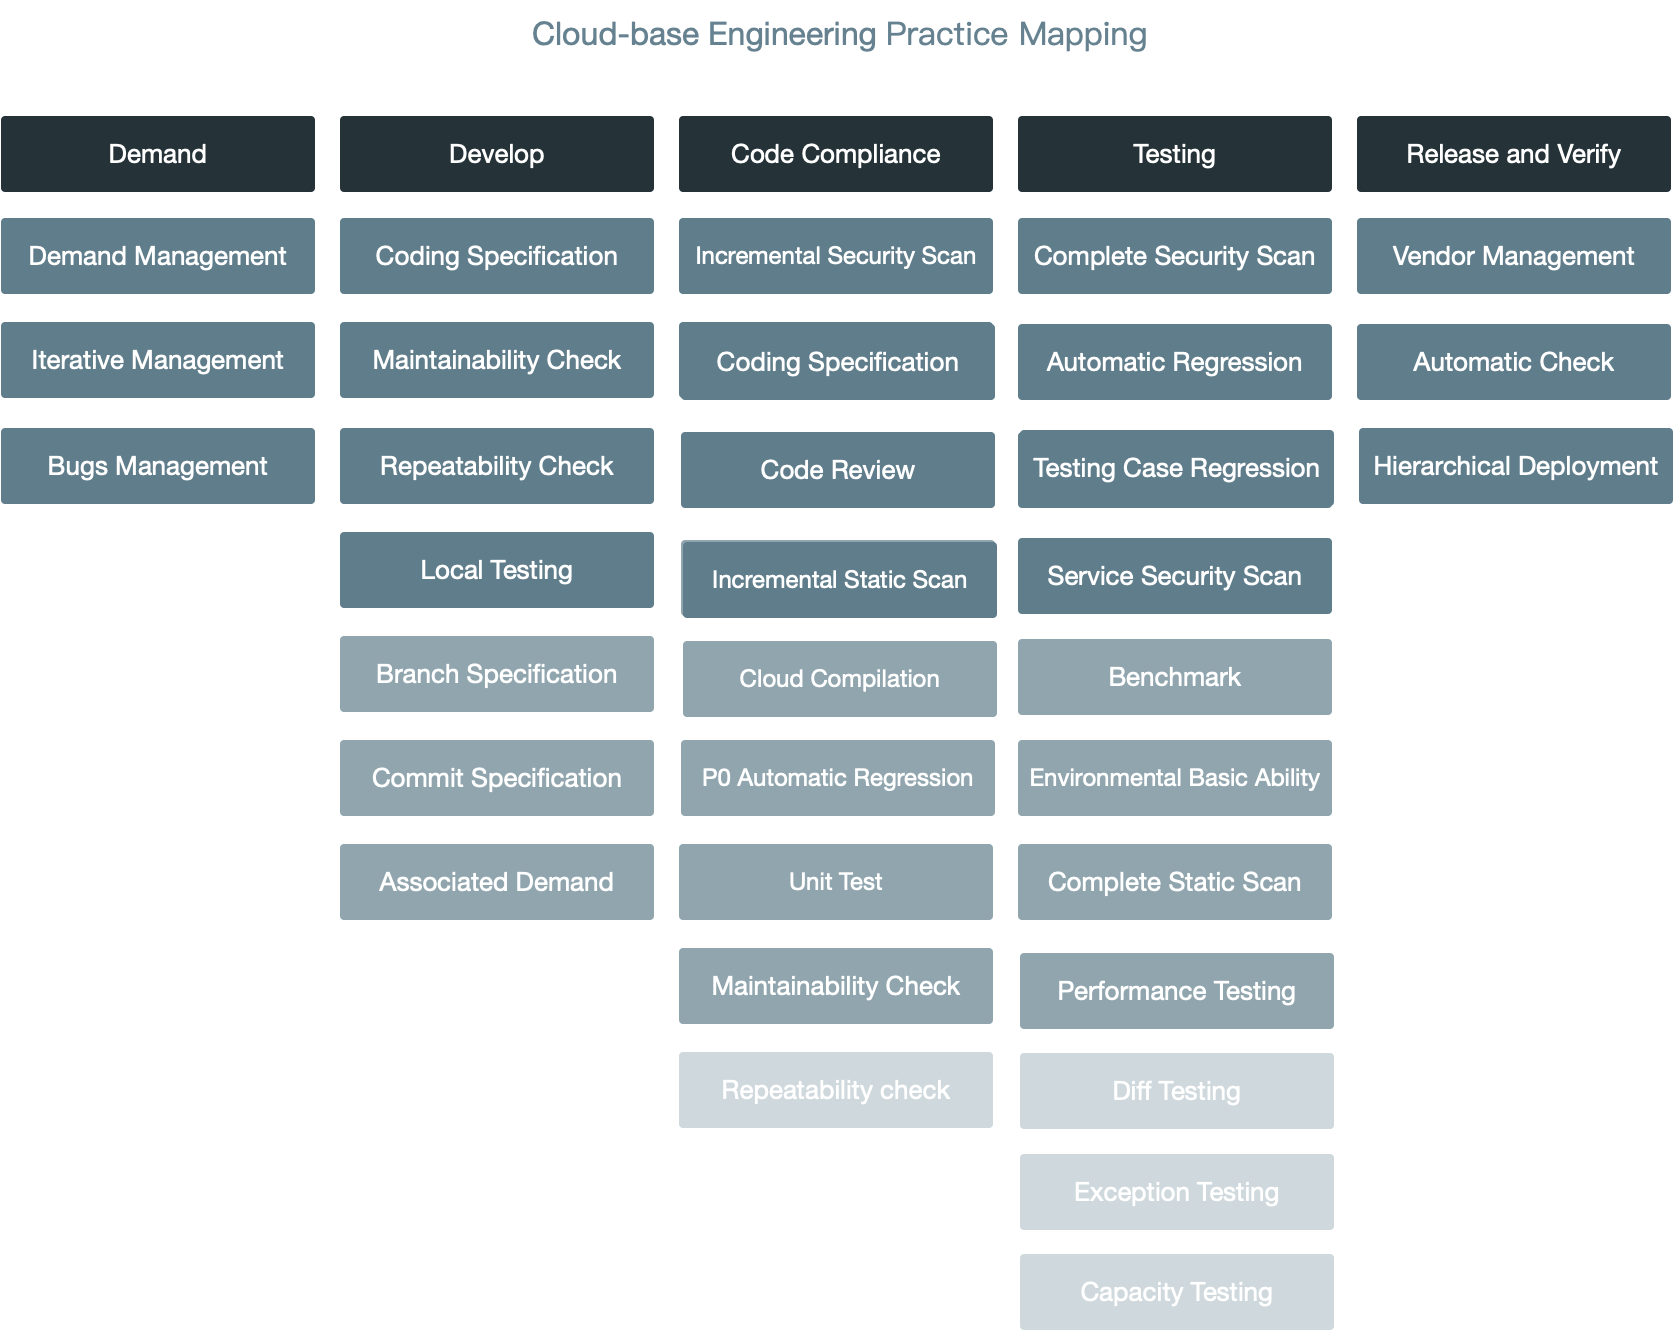 Cloud-based project engineering practice mapping